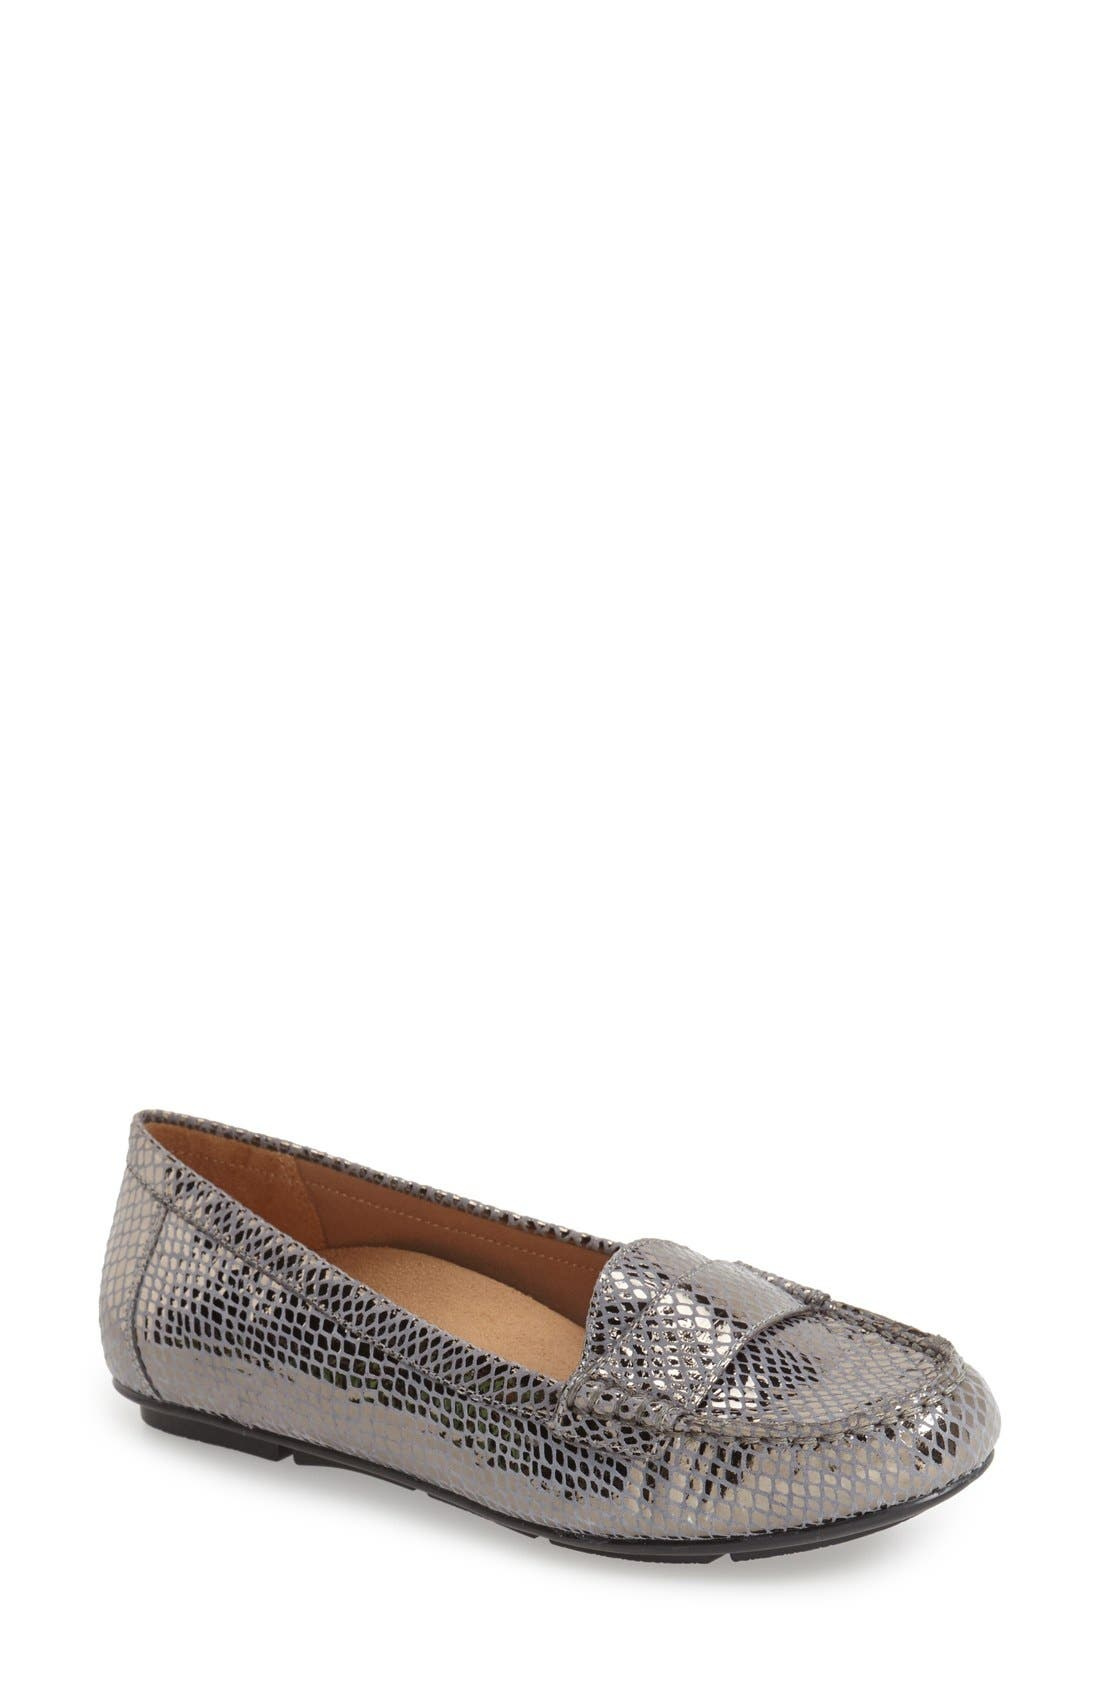 Vionic 'Larrun' Animal Print Loafer Flat (Women)